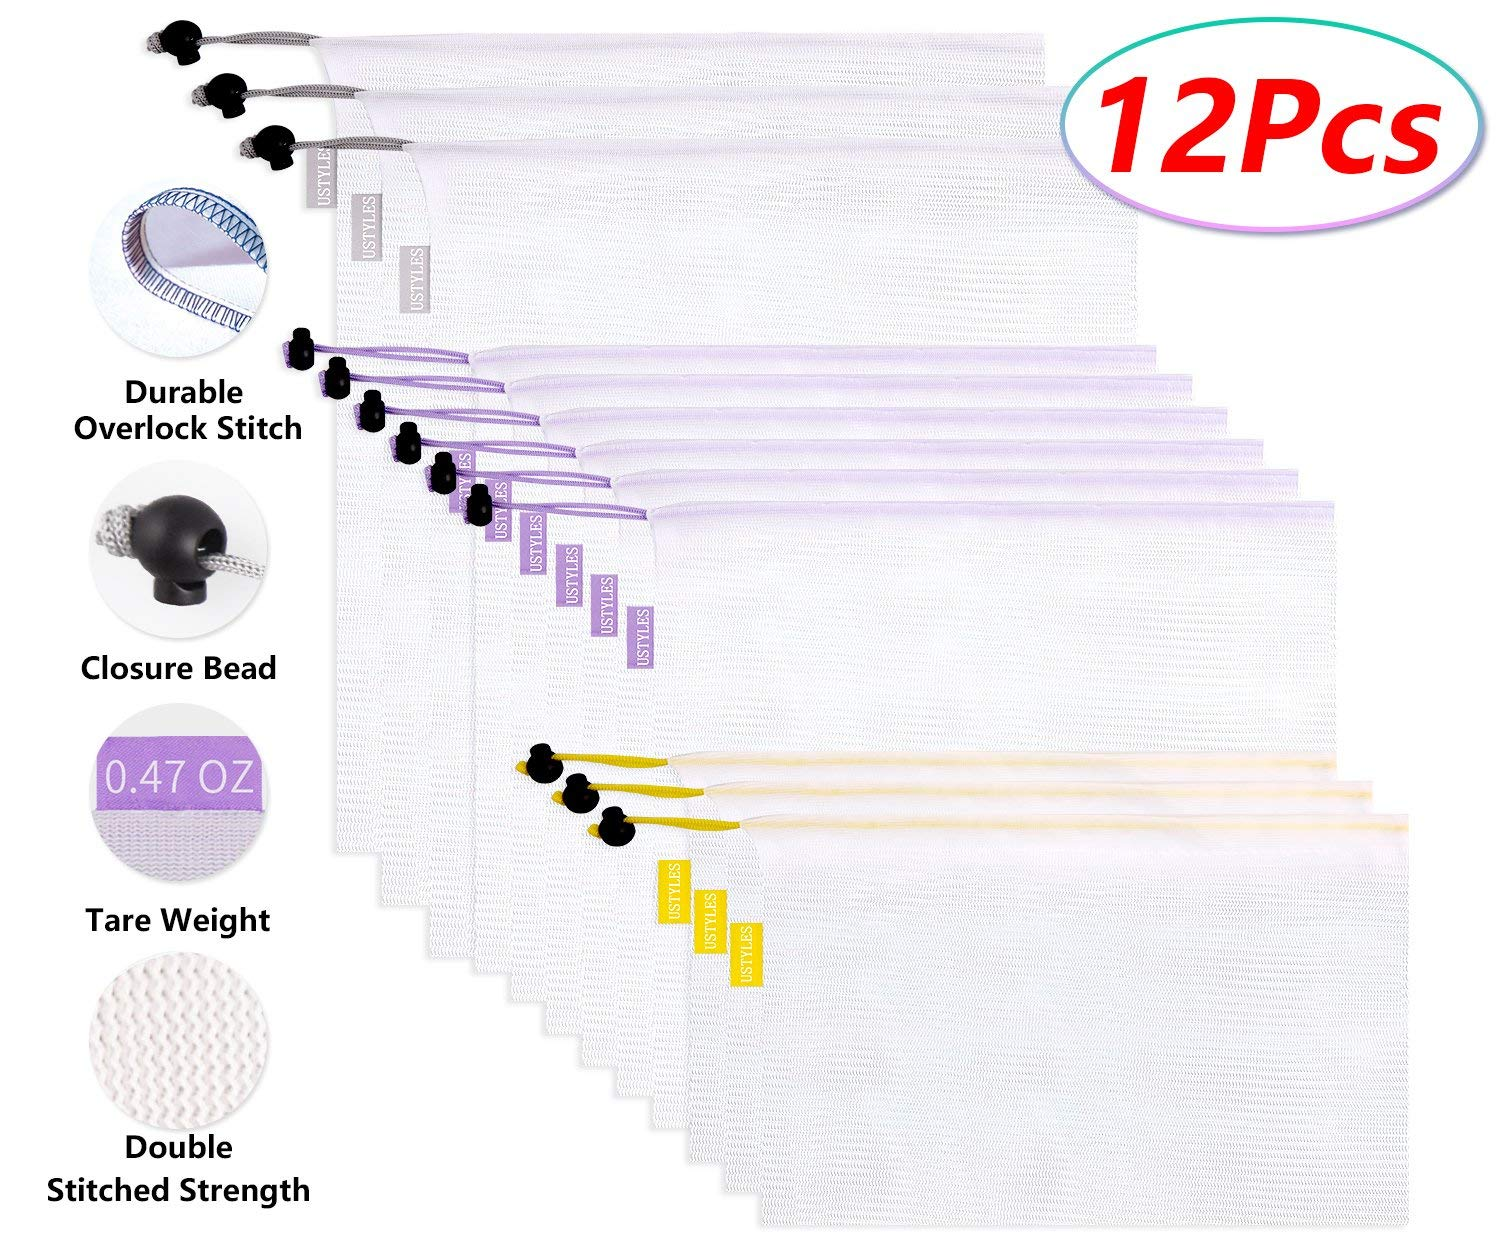 USTYLES 12Pcs Reusable Mesh Produce Bags, Superior Double-Stitched Strength Premium Mesh Bags with Color Tag Weight Lightweight See-Through ECO-friendly Reusable Grocery bag Storing Fruits Veggies Toy